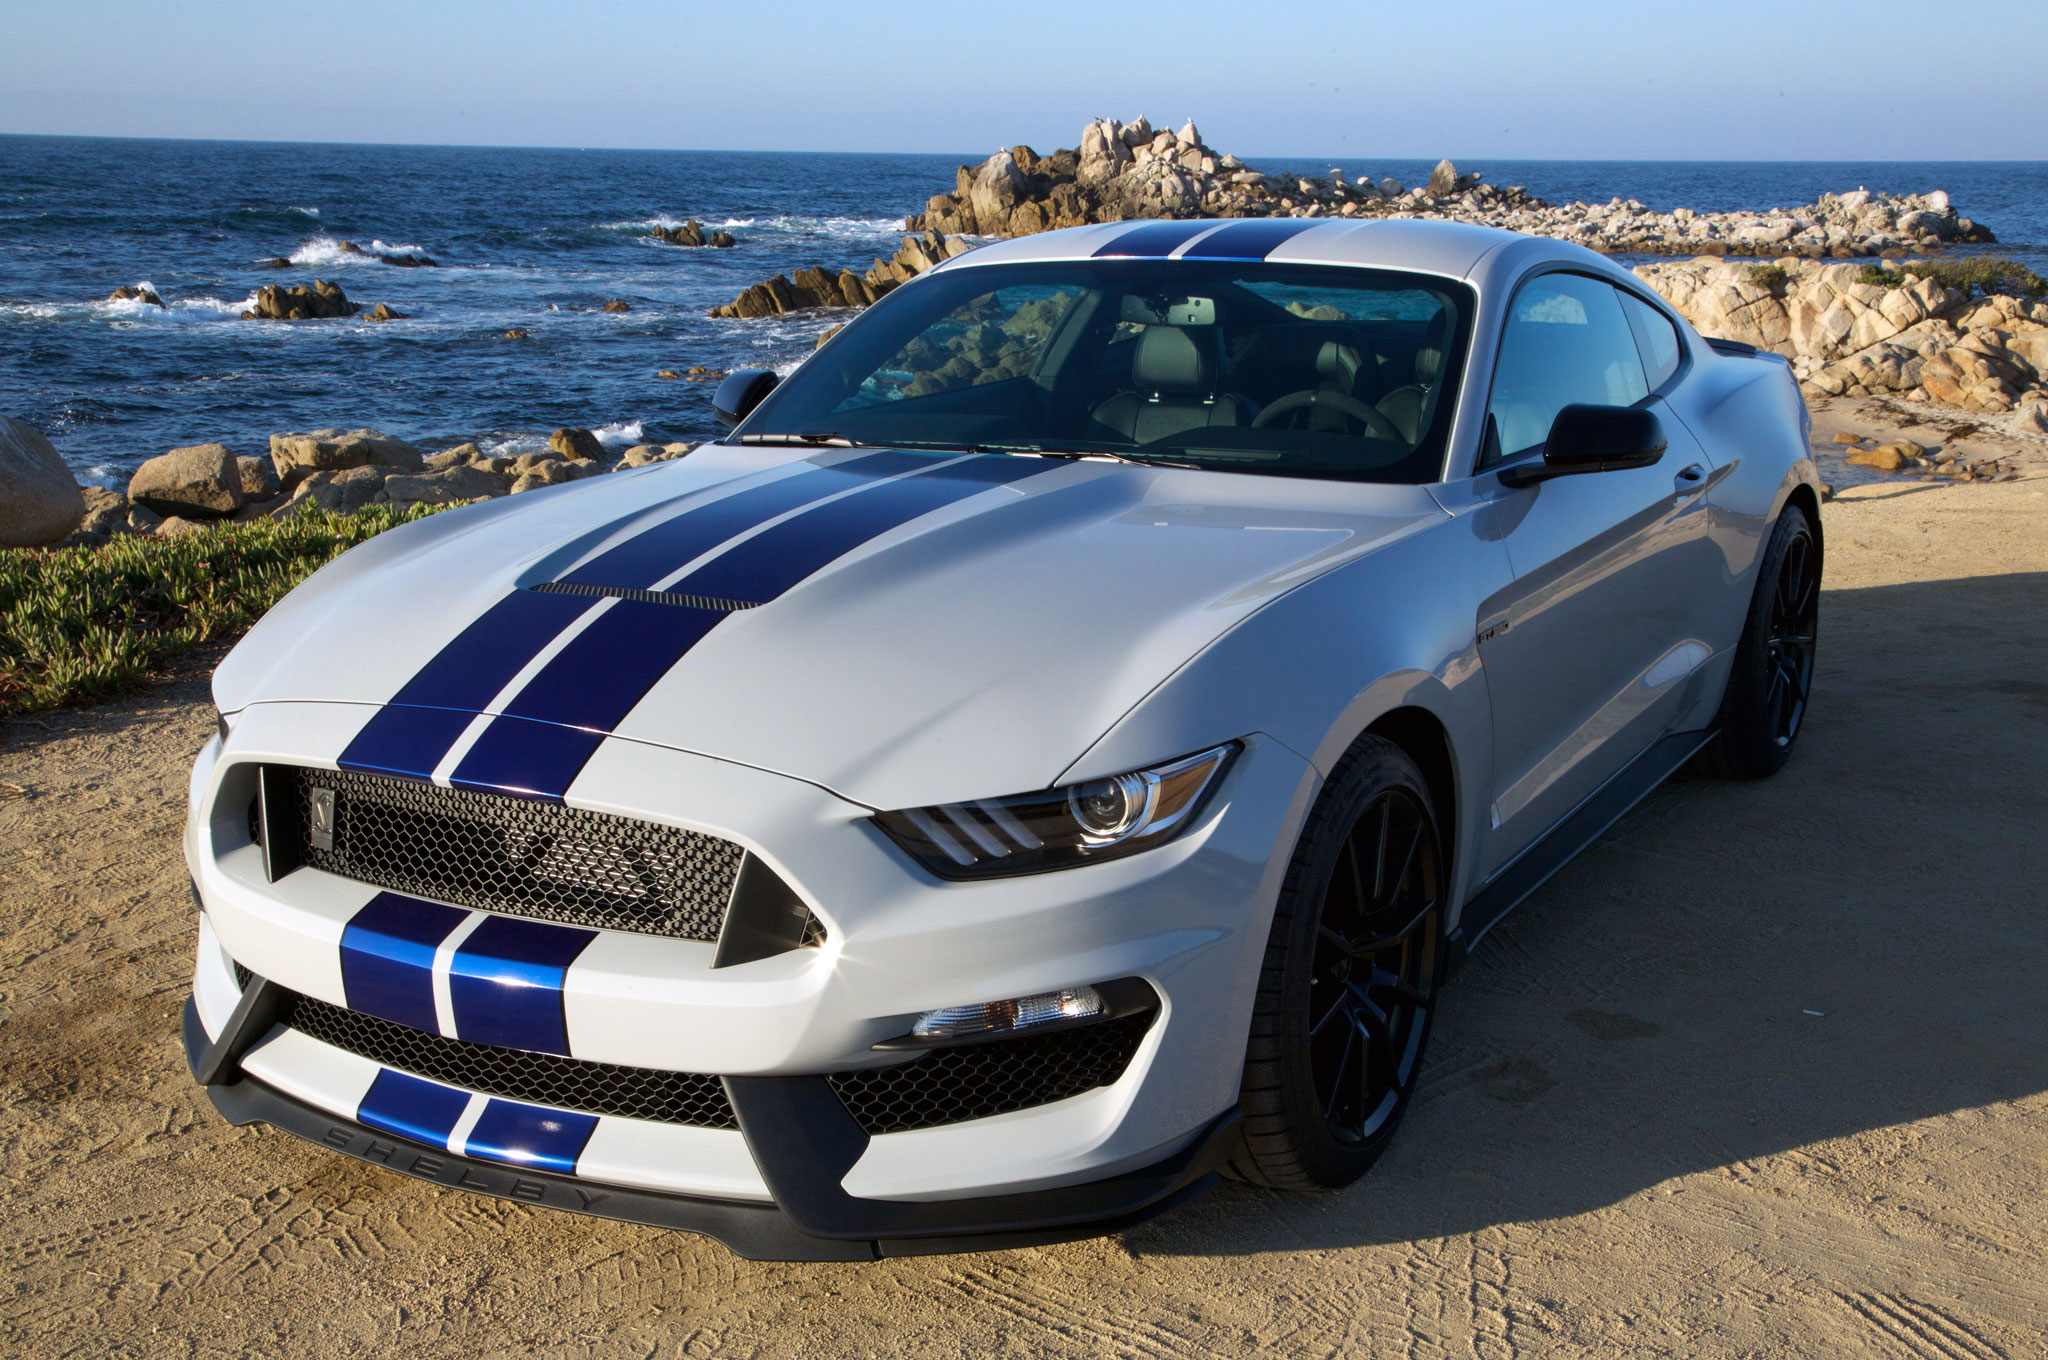 Ford Mustang Shelby Gt 2017 >> 2017 Ford Shelby GT350 One Week Review | Automobile Magazine